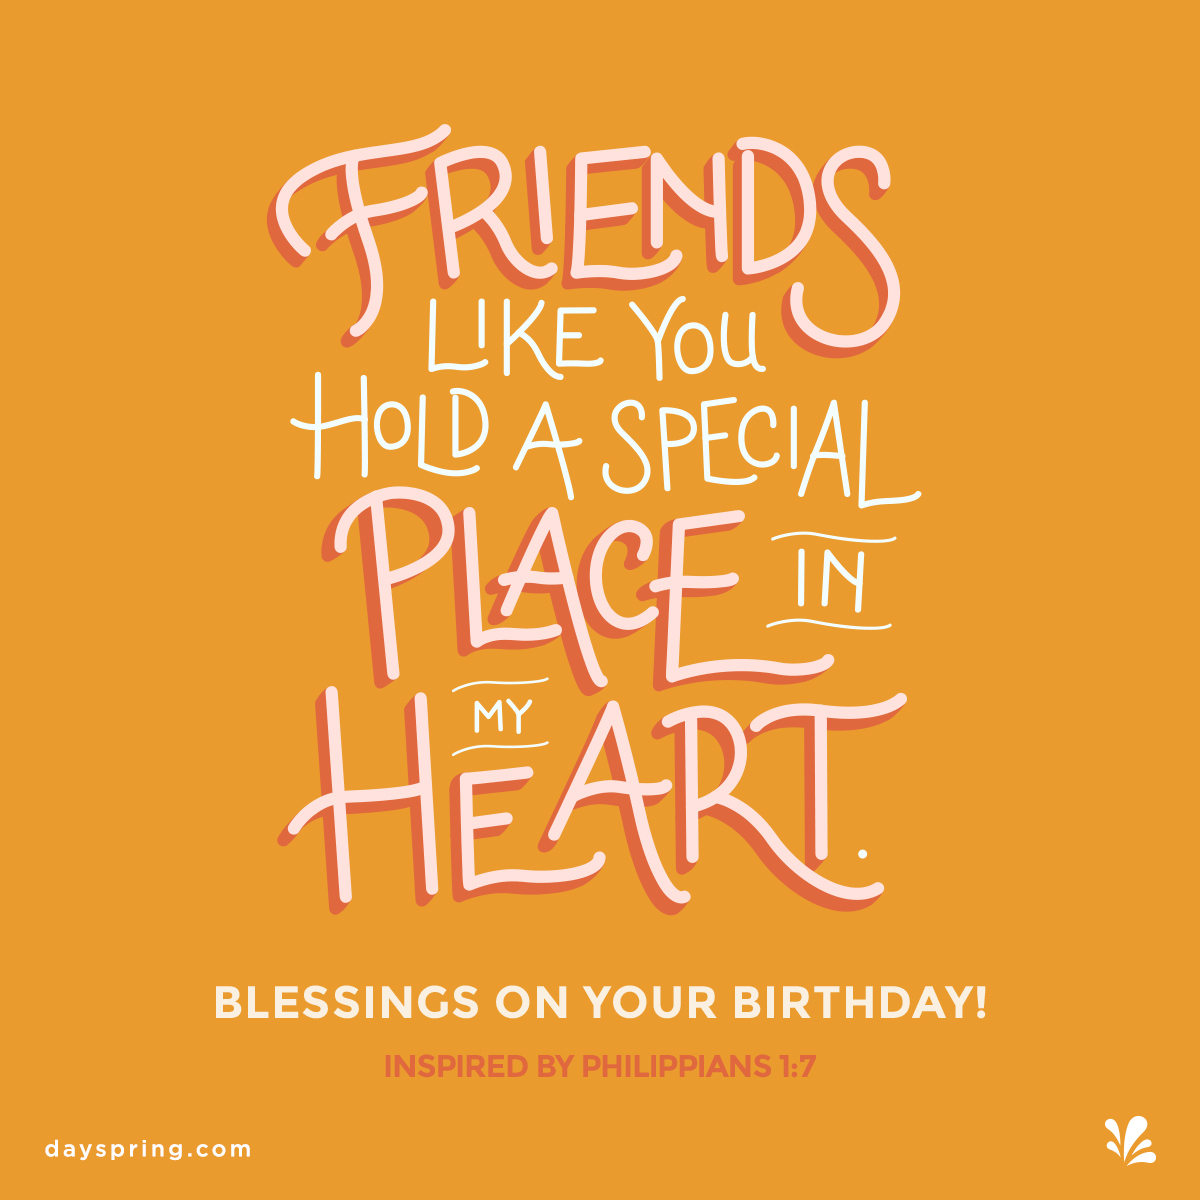 Birthday Ecards | Dayspring - Free Printable Christian Cards Online